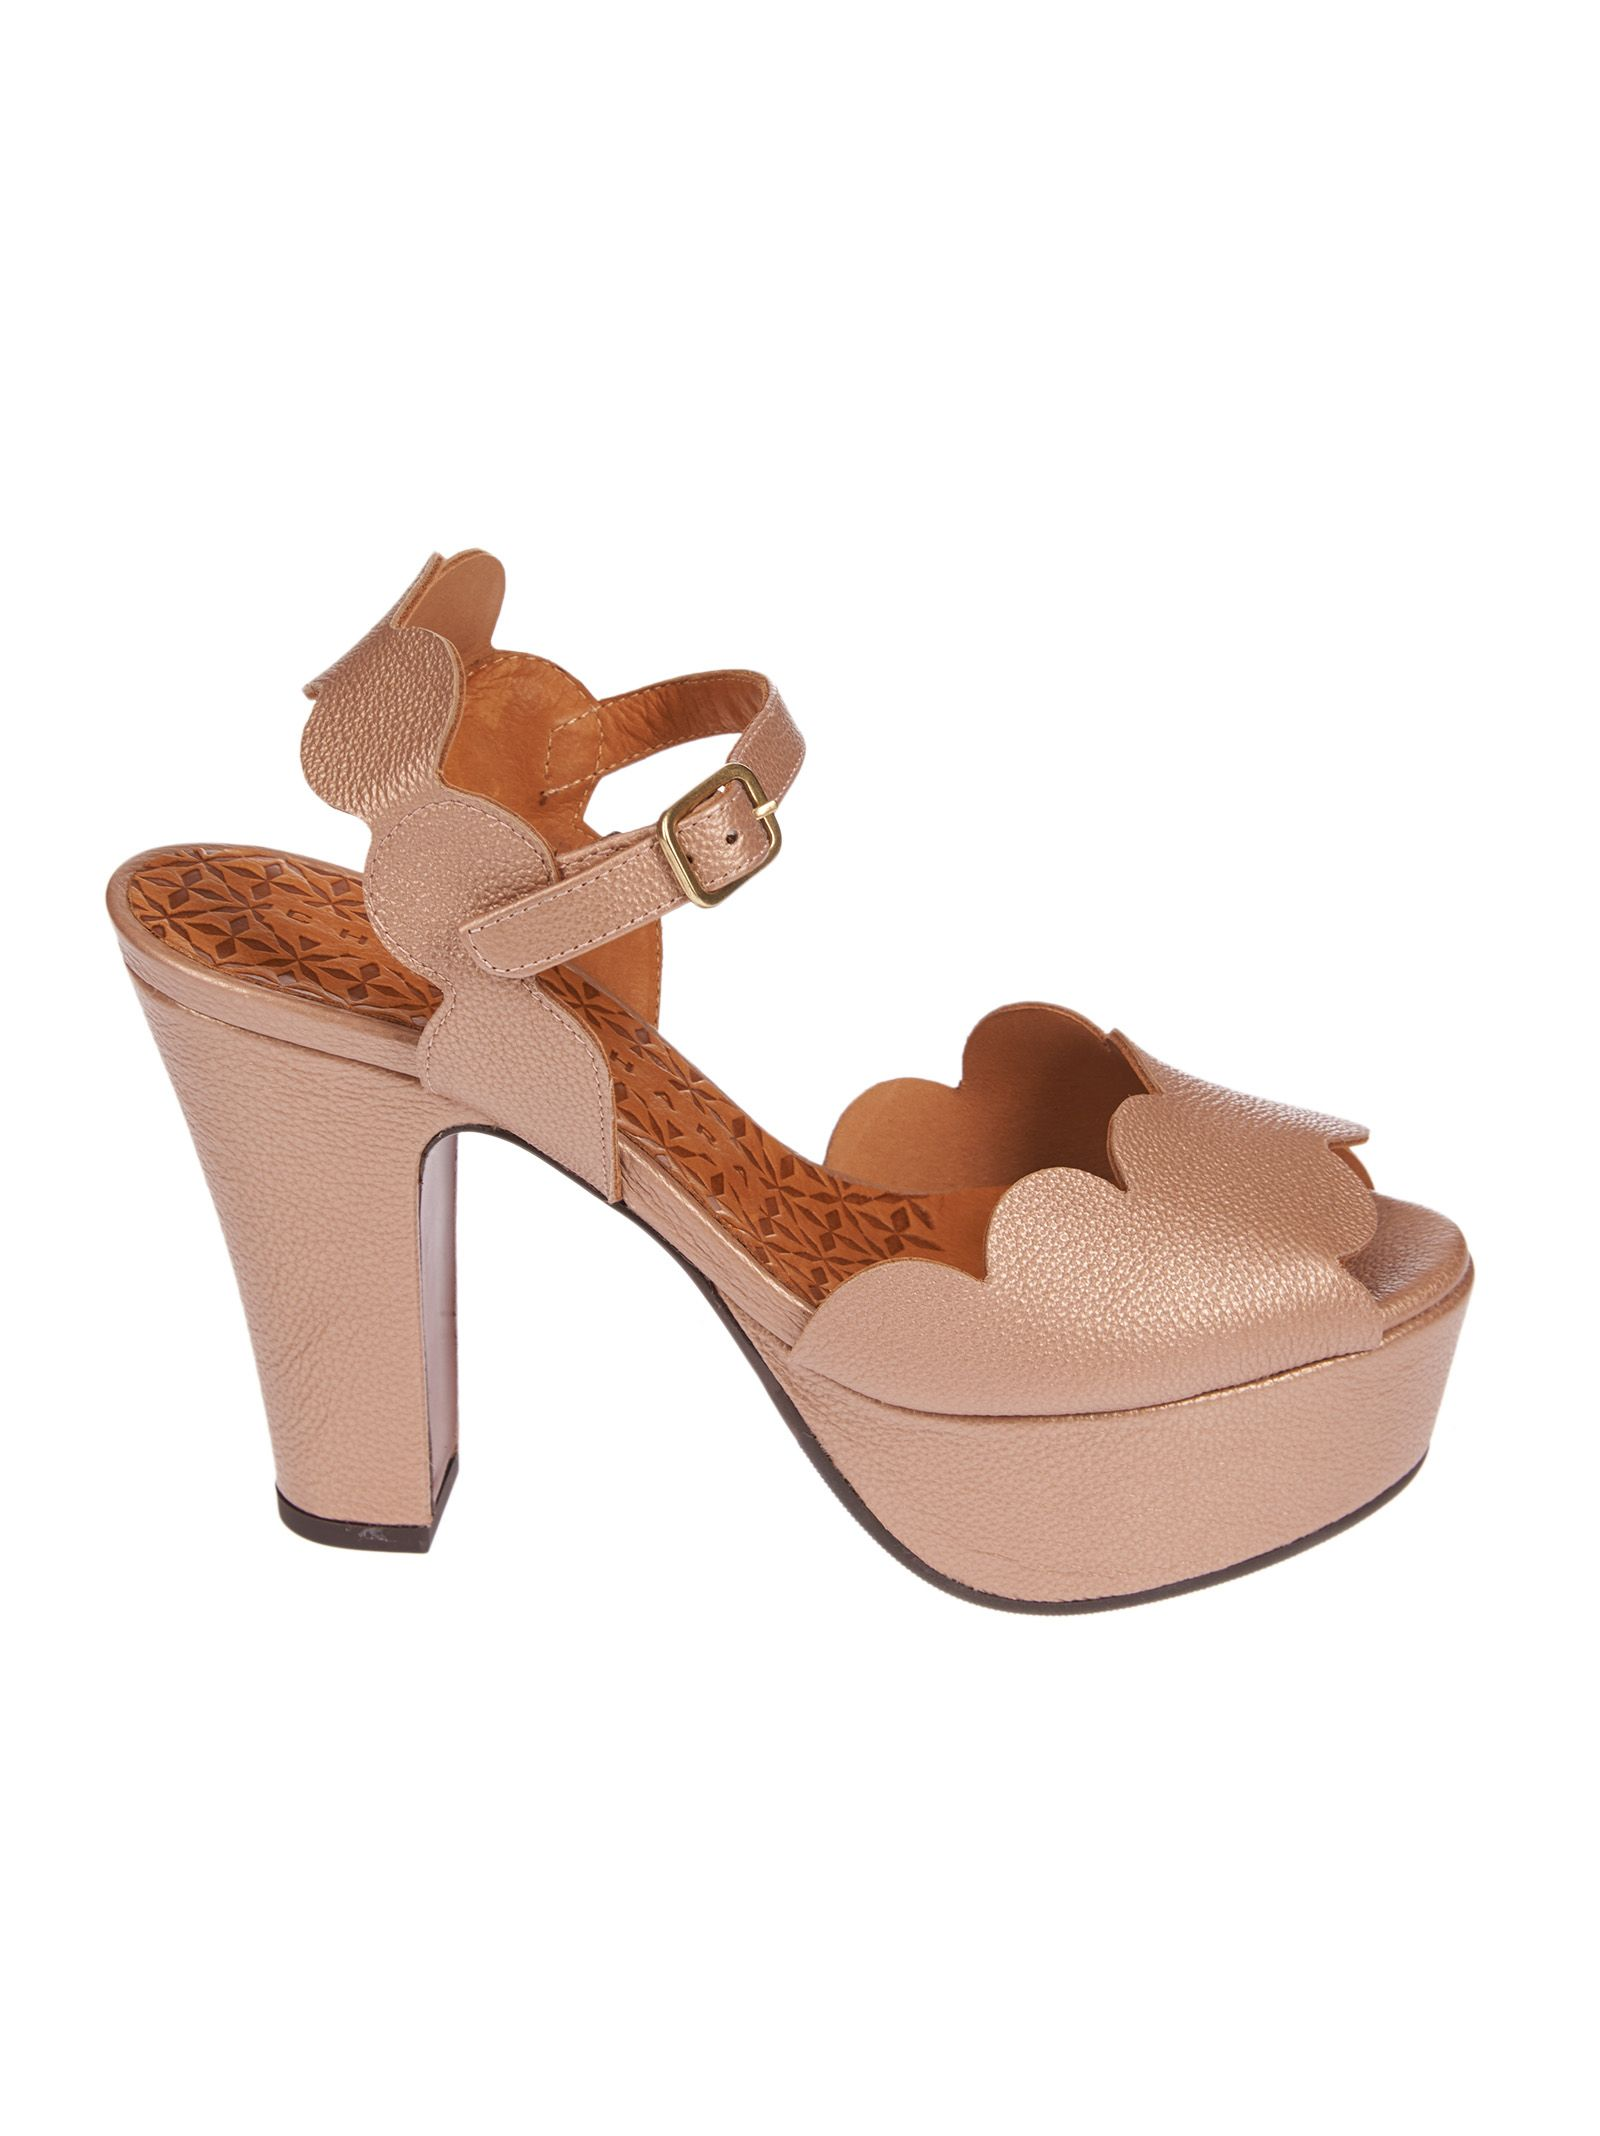 8550ccd656a Chie Mihara Chie Mihara Xevo Platform Sandals - Nude - 10532953 ...